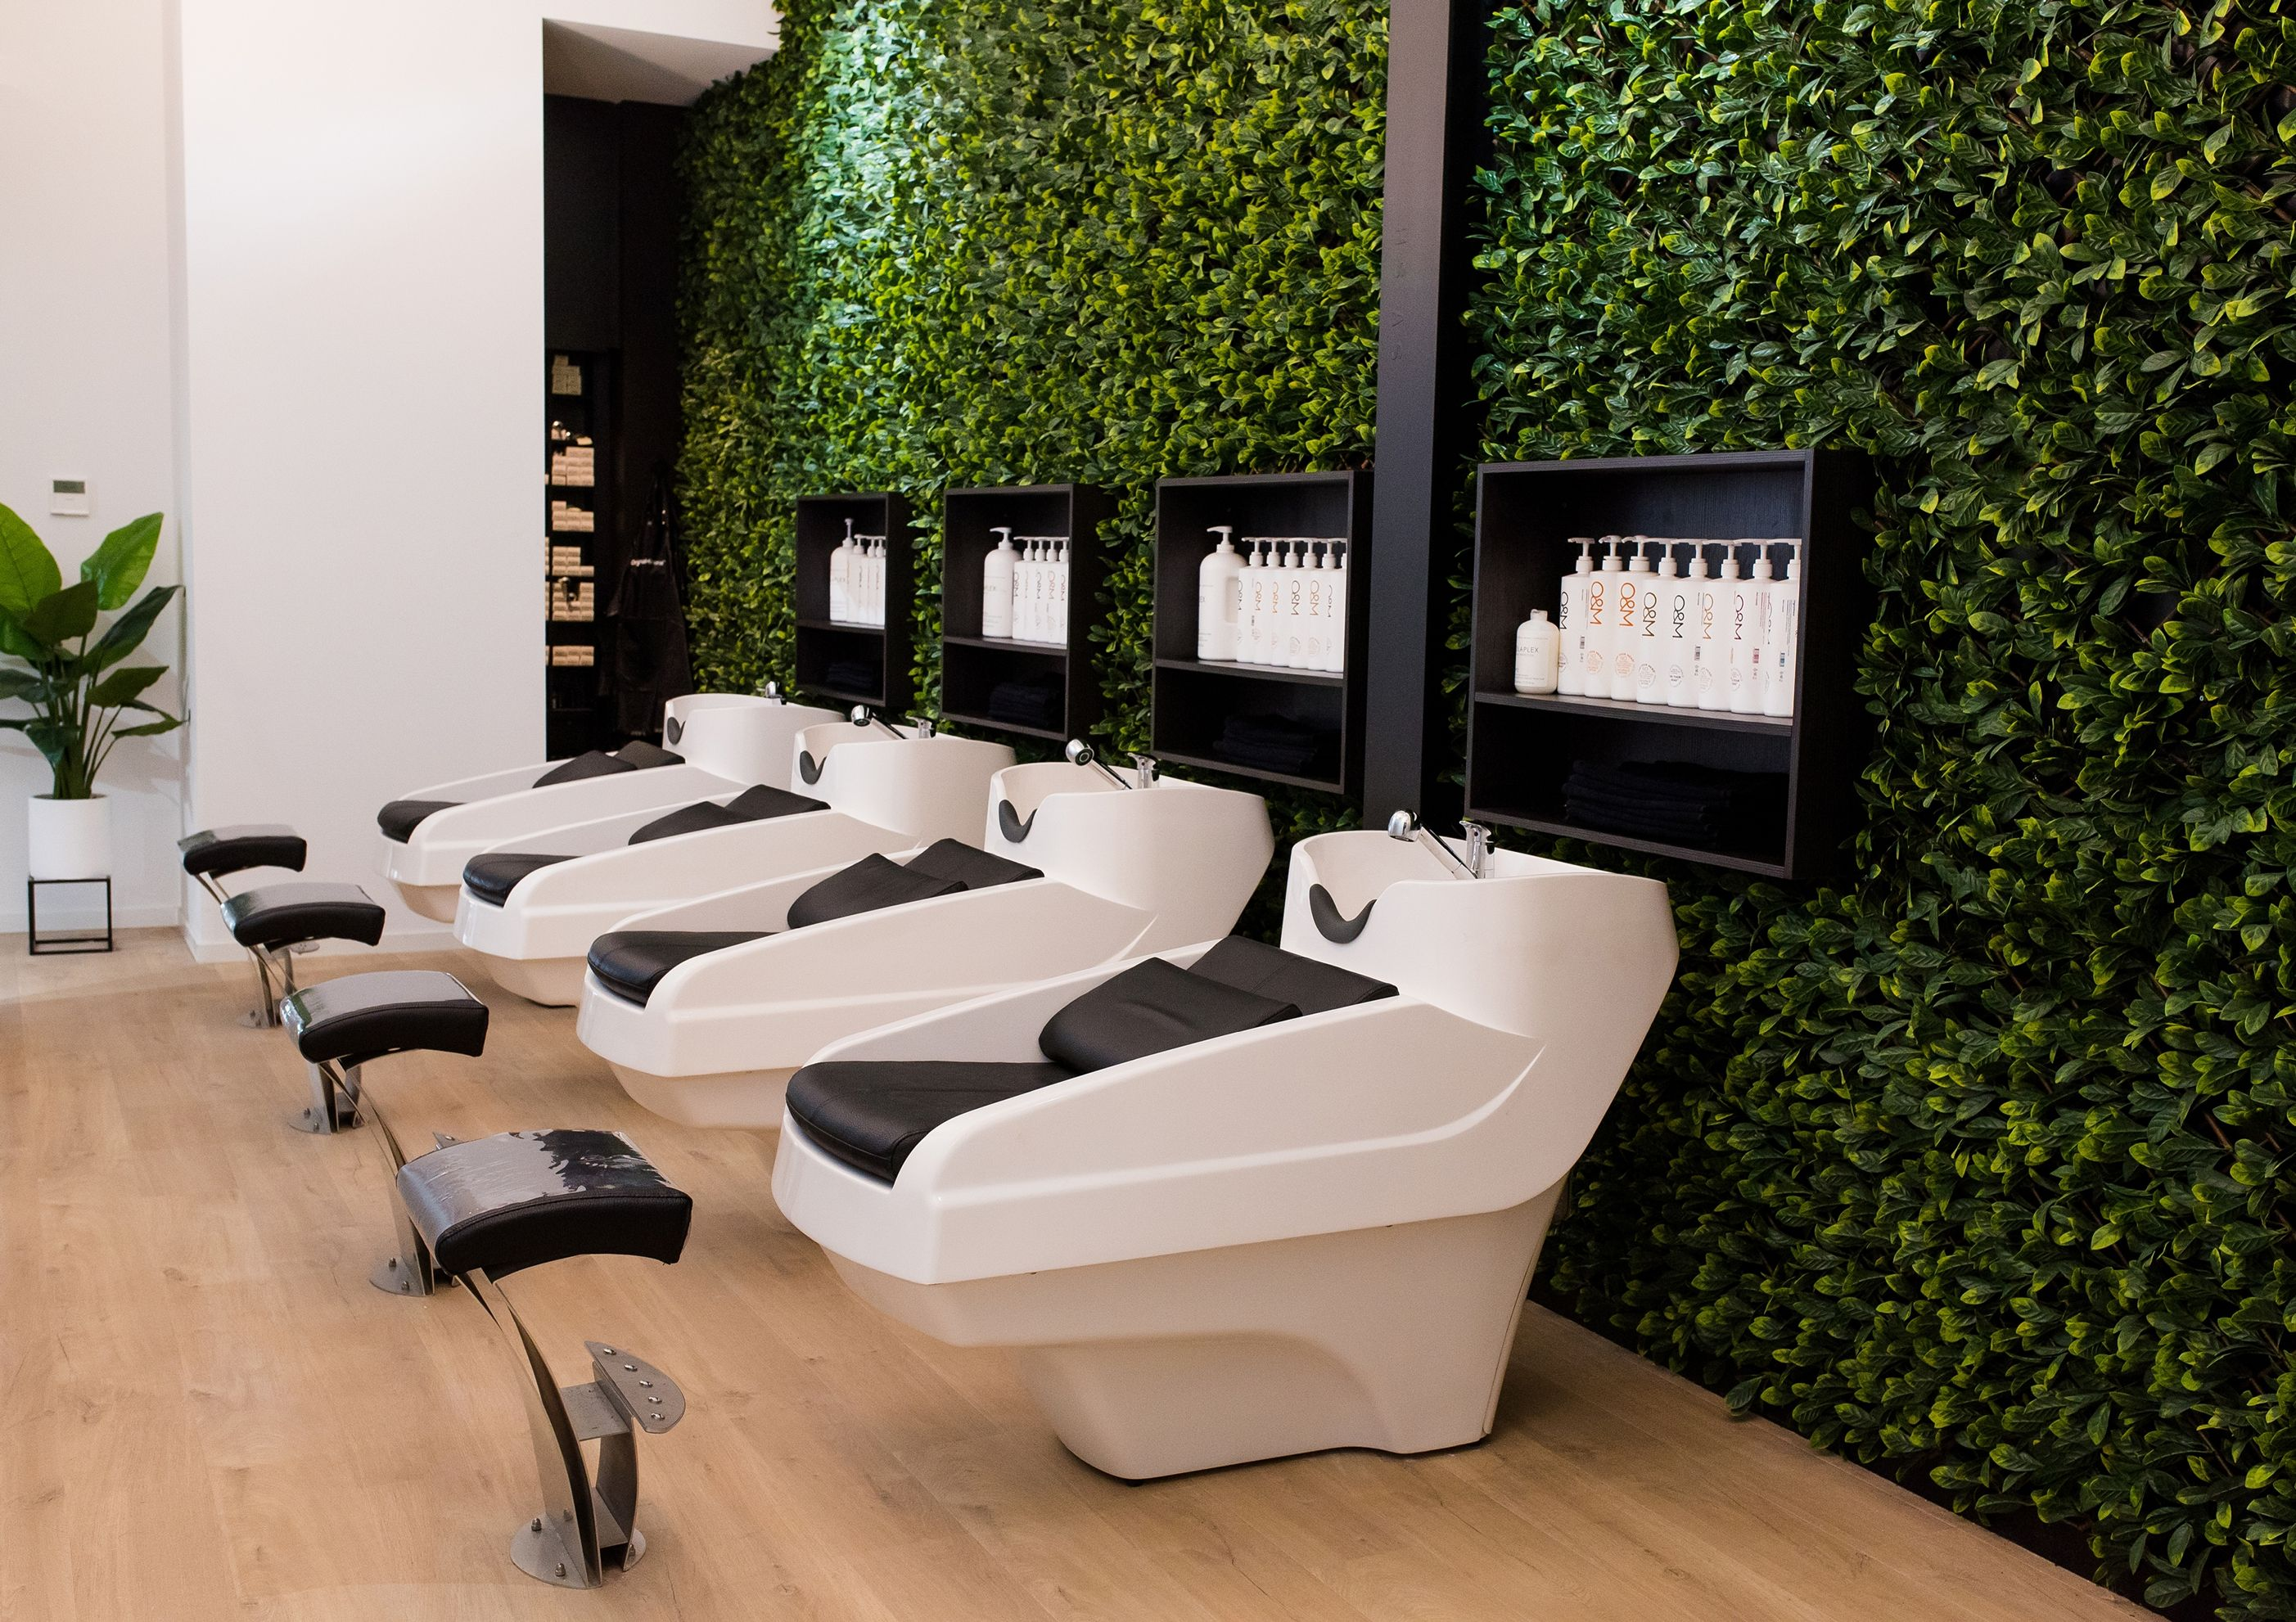 Salon Inspiration Salon Ideas Beauty Salon Reception Beauty Salon Design